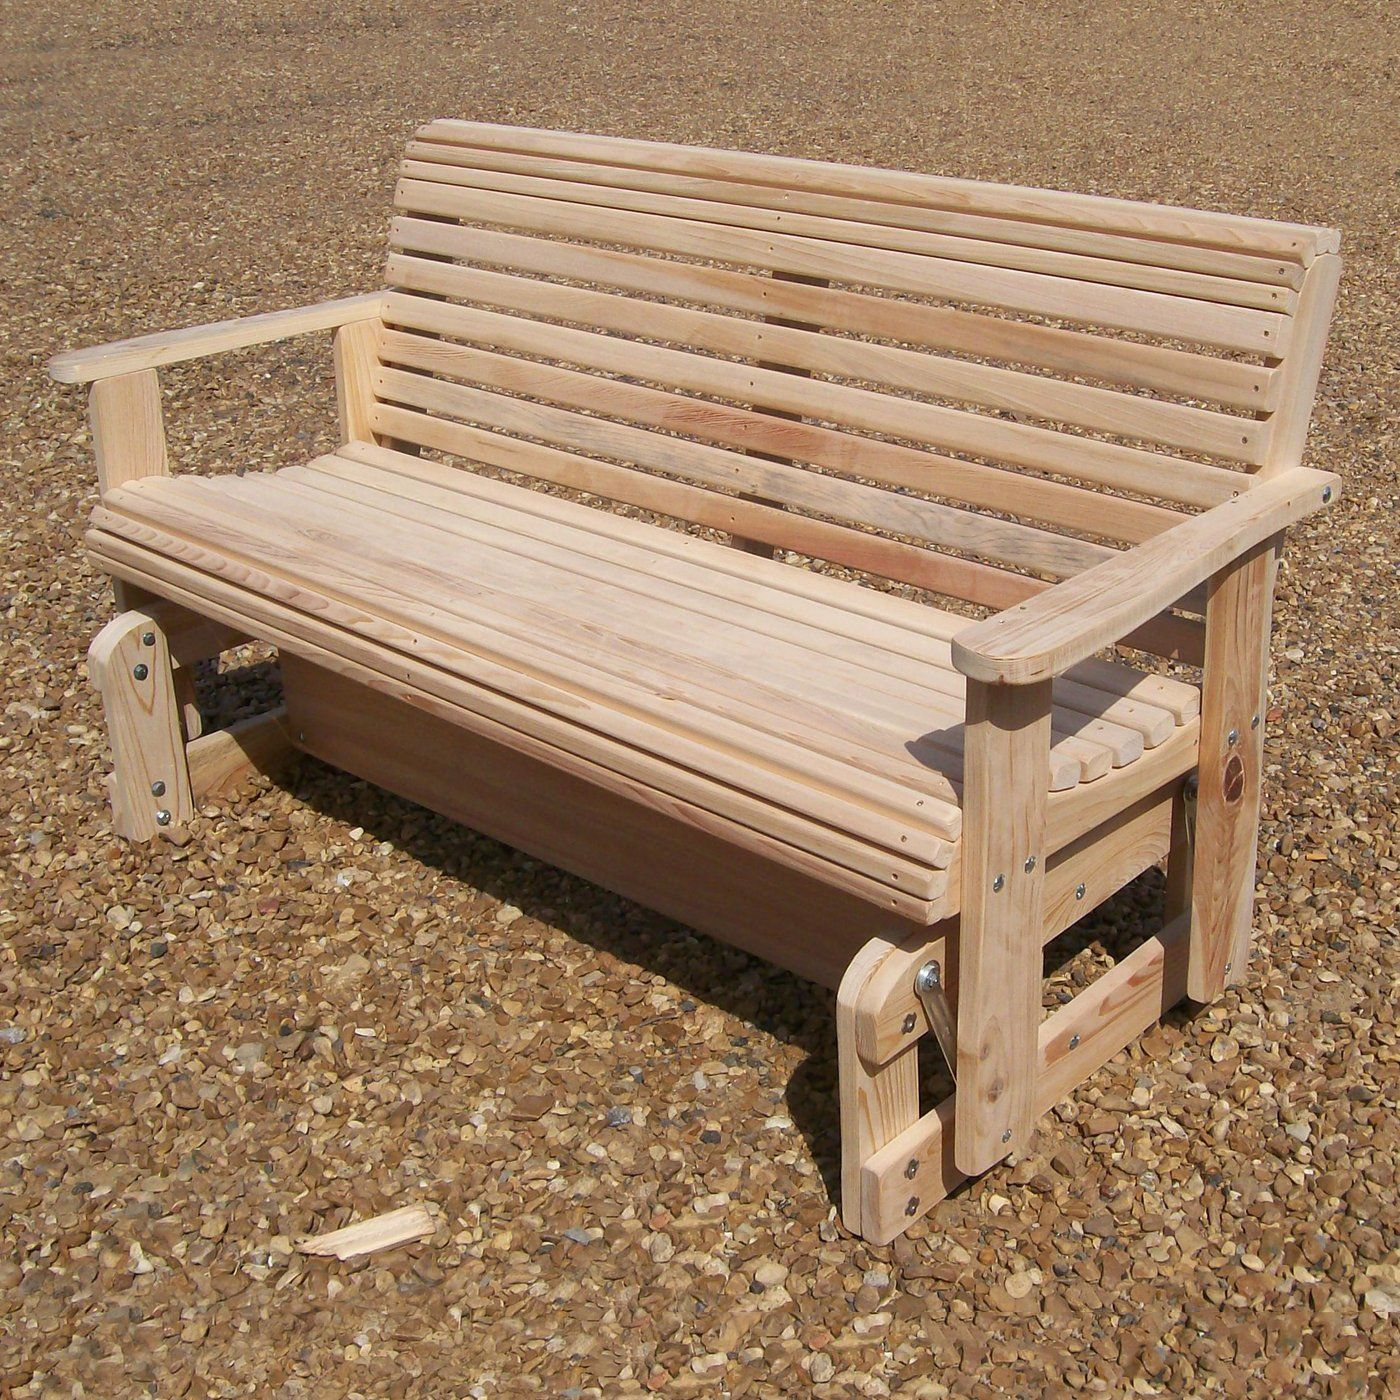 Superior Shop LA Cypress Swings CG Outdoor Rollback Glider At ATG Stores. Browse Our  Outdoor Benches